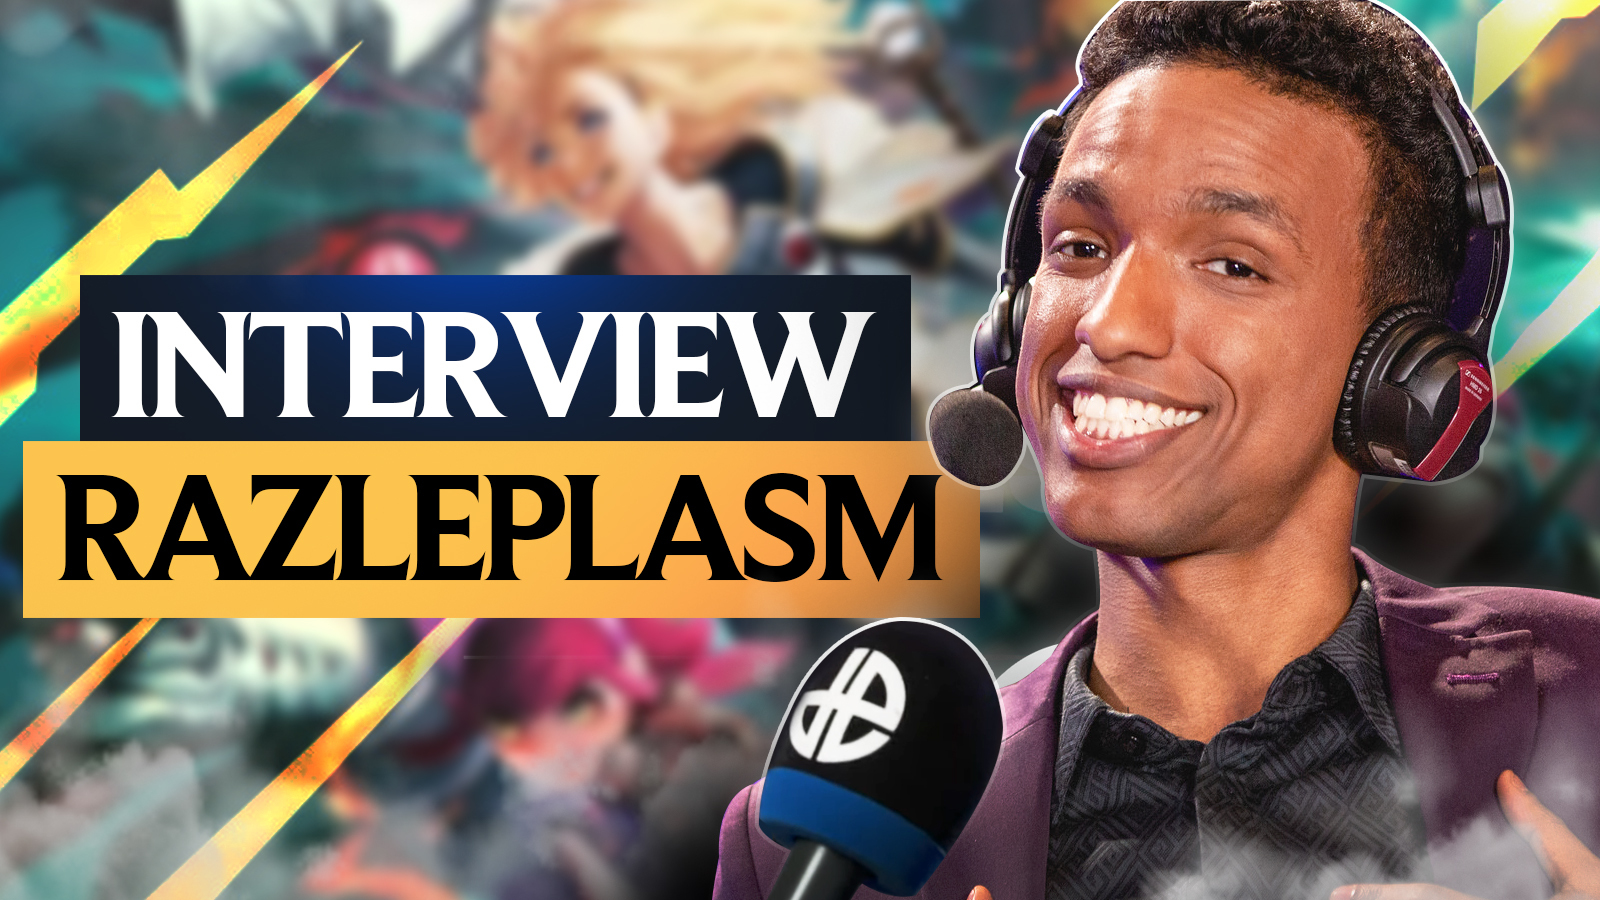 League_of_Legends_LoL_LCS_caster_Raz_on_people_of_color_in_esports